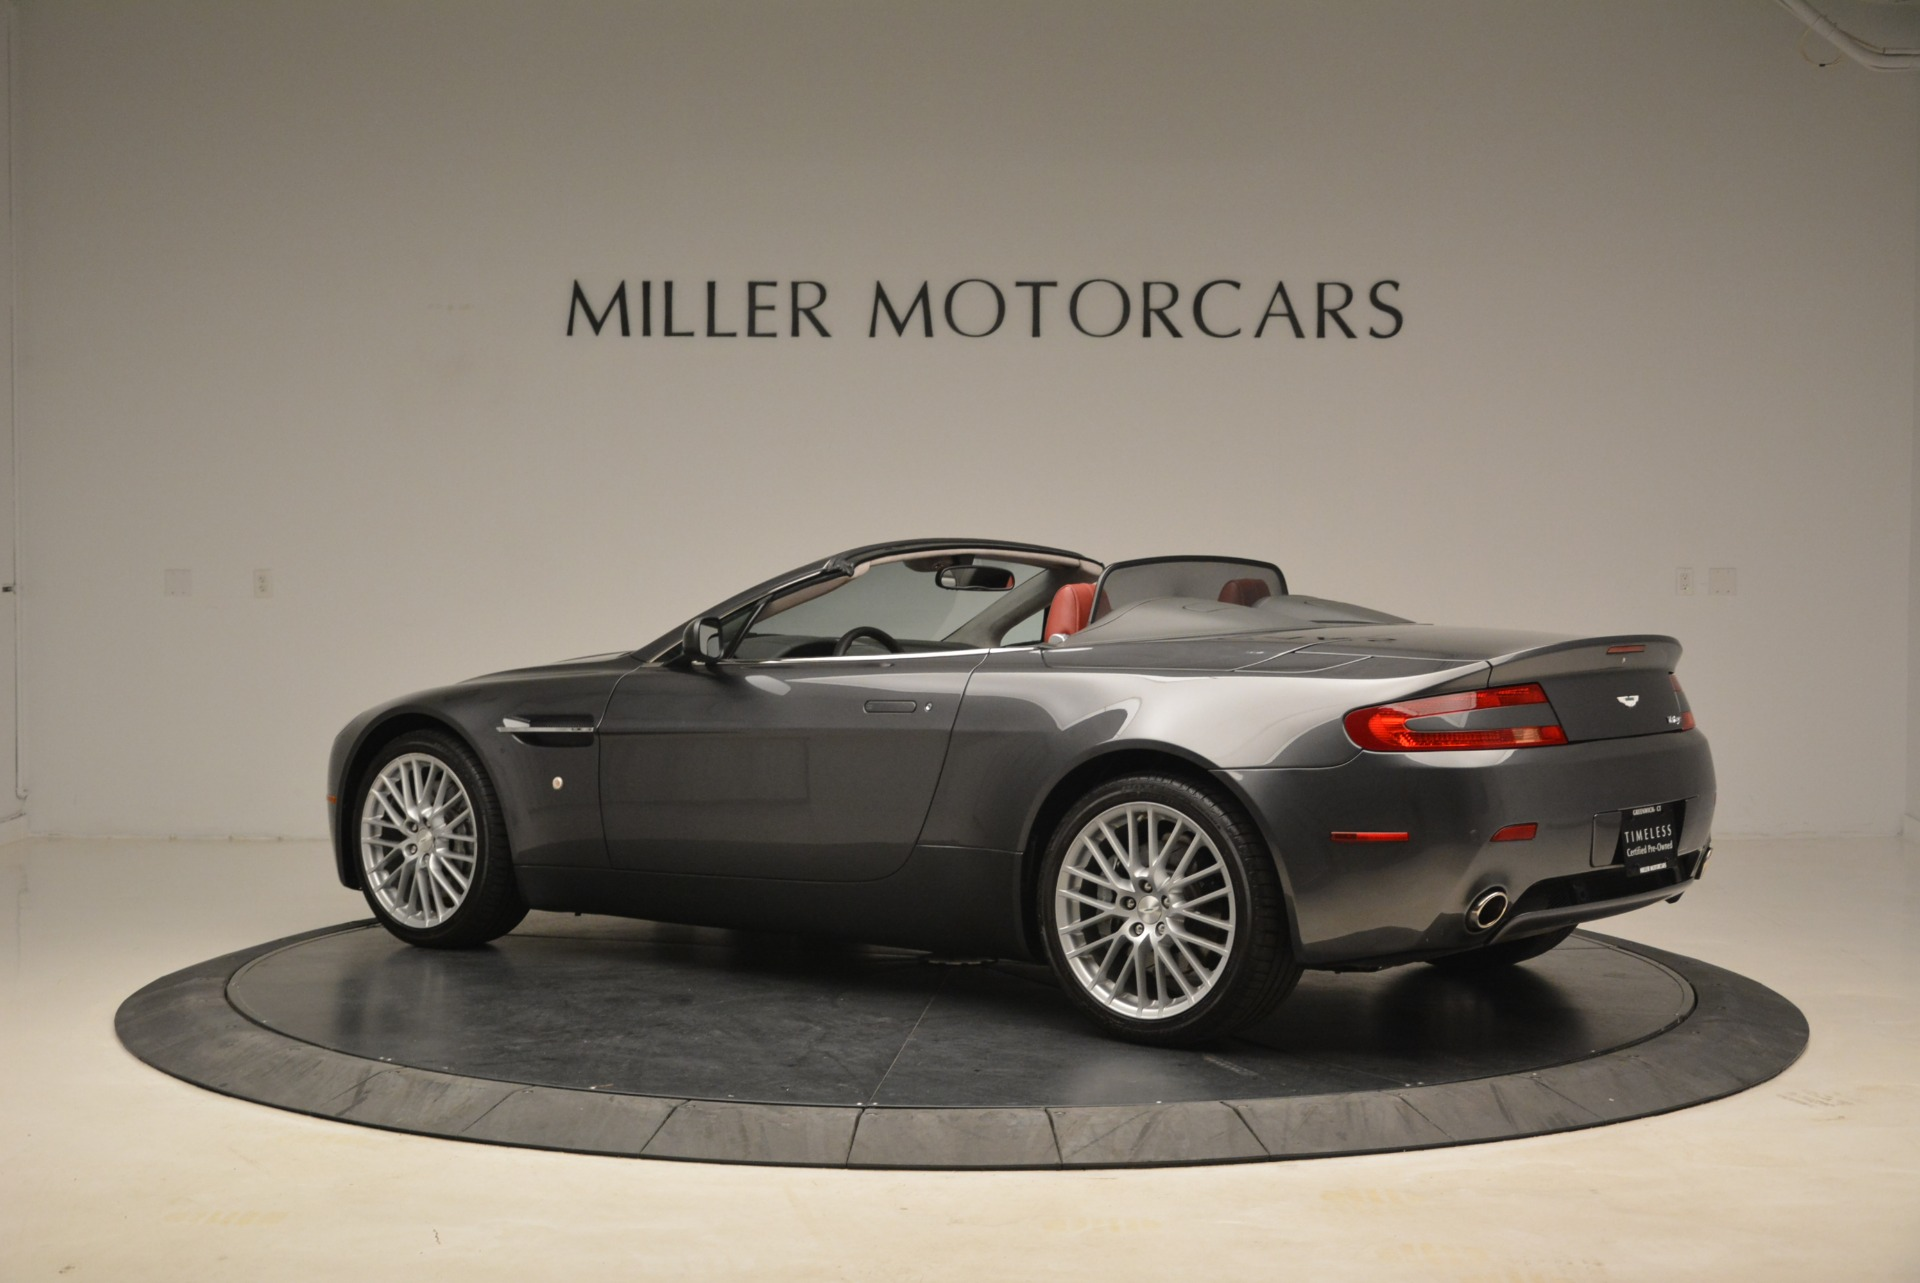 Used 2009 Aston Martin V8 Vantage Roadster For Sale In Westport, CT 2123_p4